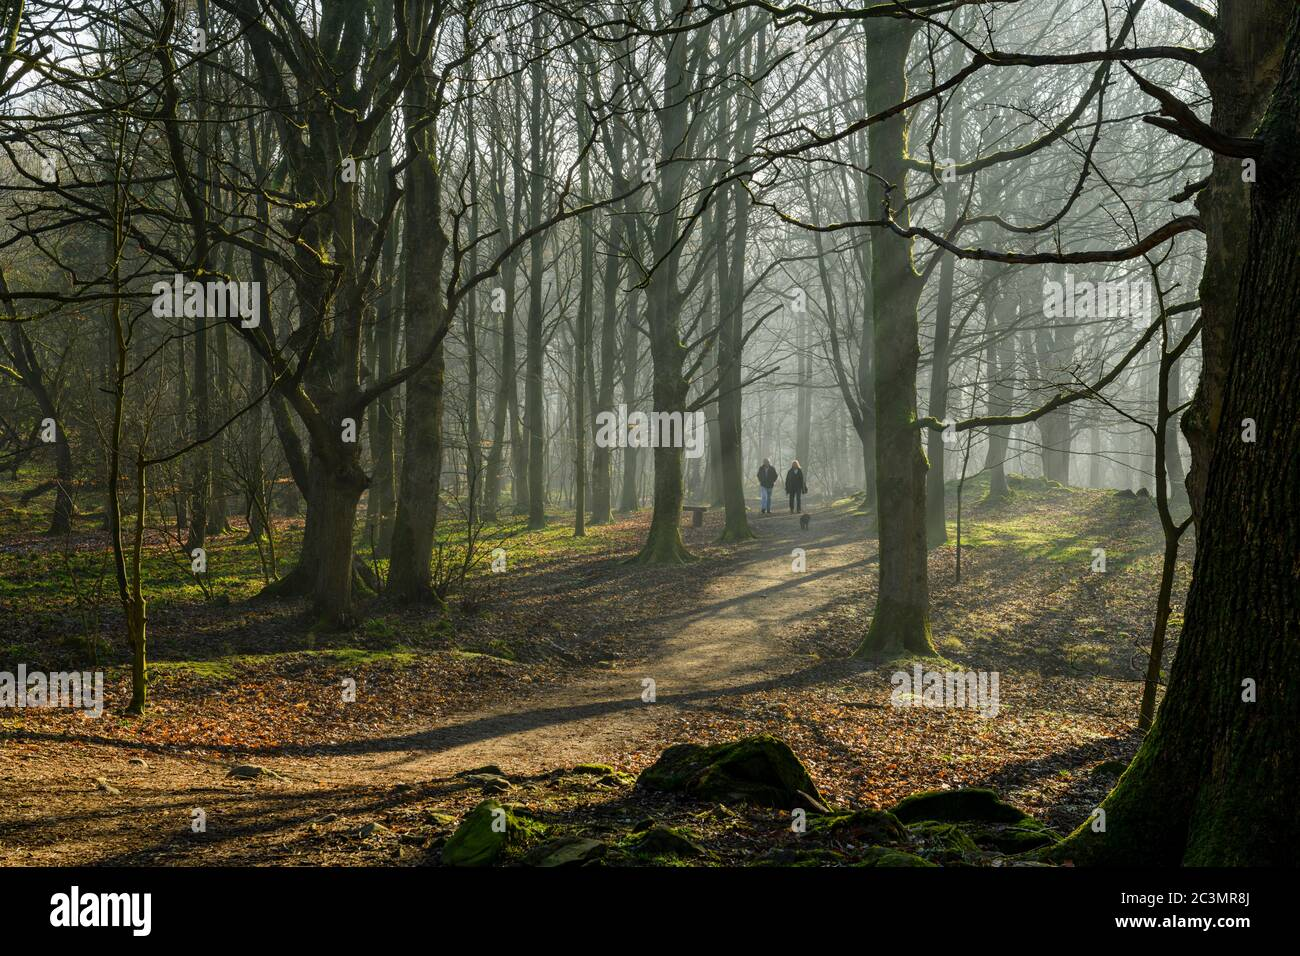 Rays or shafts of sunlight, misty morning, trees & dog walkers on path - quiet scenic woodland, Middleton Woods, Ilkley, West Yorkshire, England, UK. Stock Photo